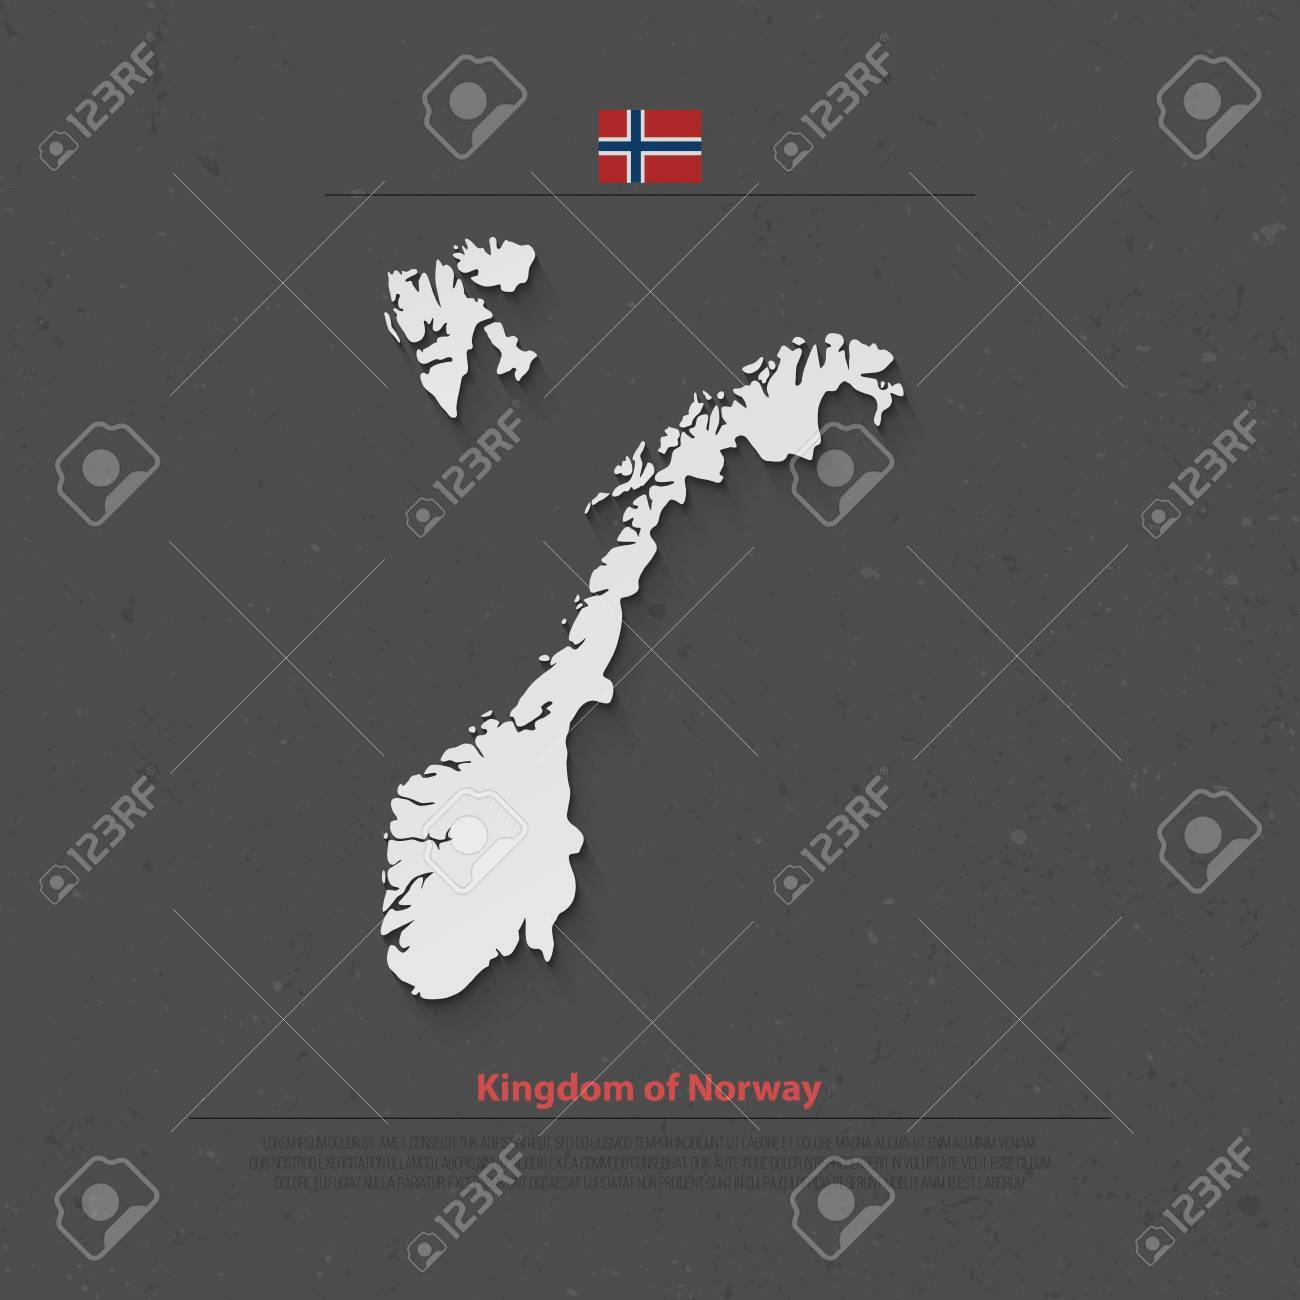 Kingdom of Norway isolated map and official flag icons. vector.. on republic of panama map, republic of maldives map, russian federation map, united arab emirates map, republic of moldova map, republic of turkey map, republic of san marino map, republic of india map, bailiwick of jersey map, republic of cyprus map, state of israel map, republic of colombia map, republic of south africa map, people's republic of china map, united states of america map, united republic of tanzania map, republic of belarus map, republic of nauru map, japan map, republic of palau map,